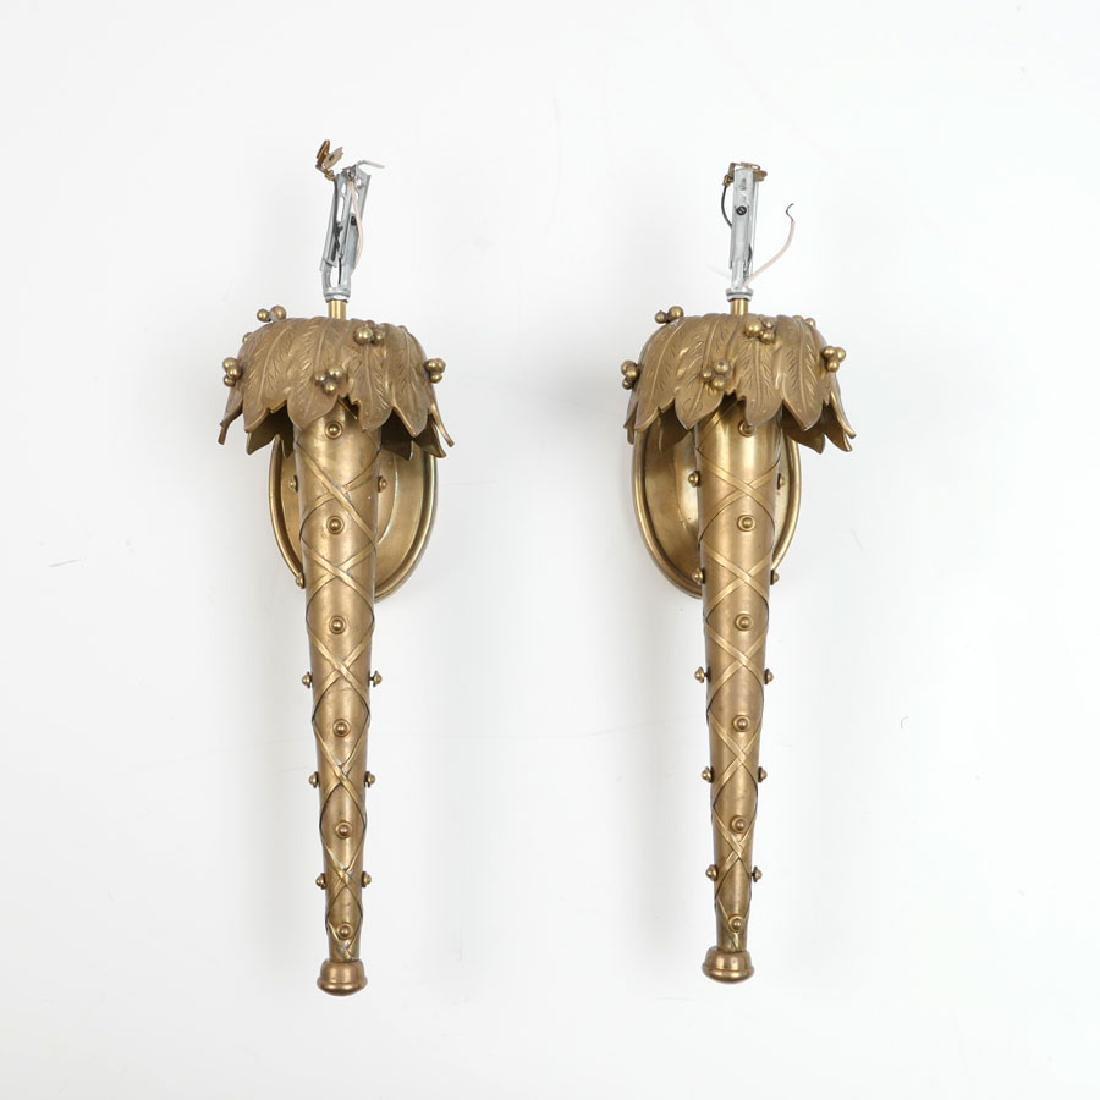 PAIR CHAPMAN BRASS WALL SCONCES